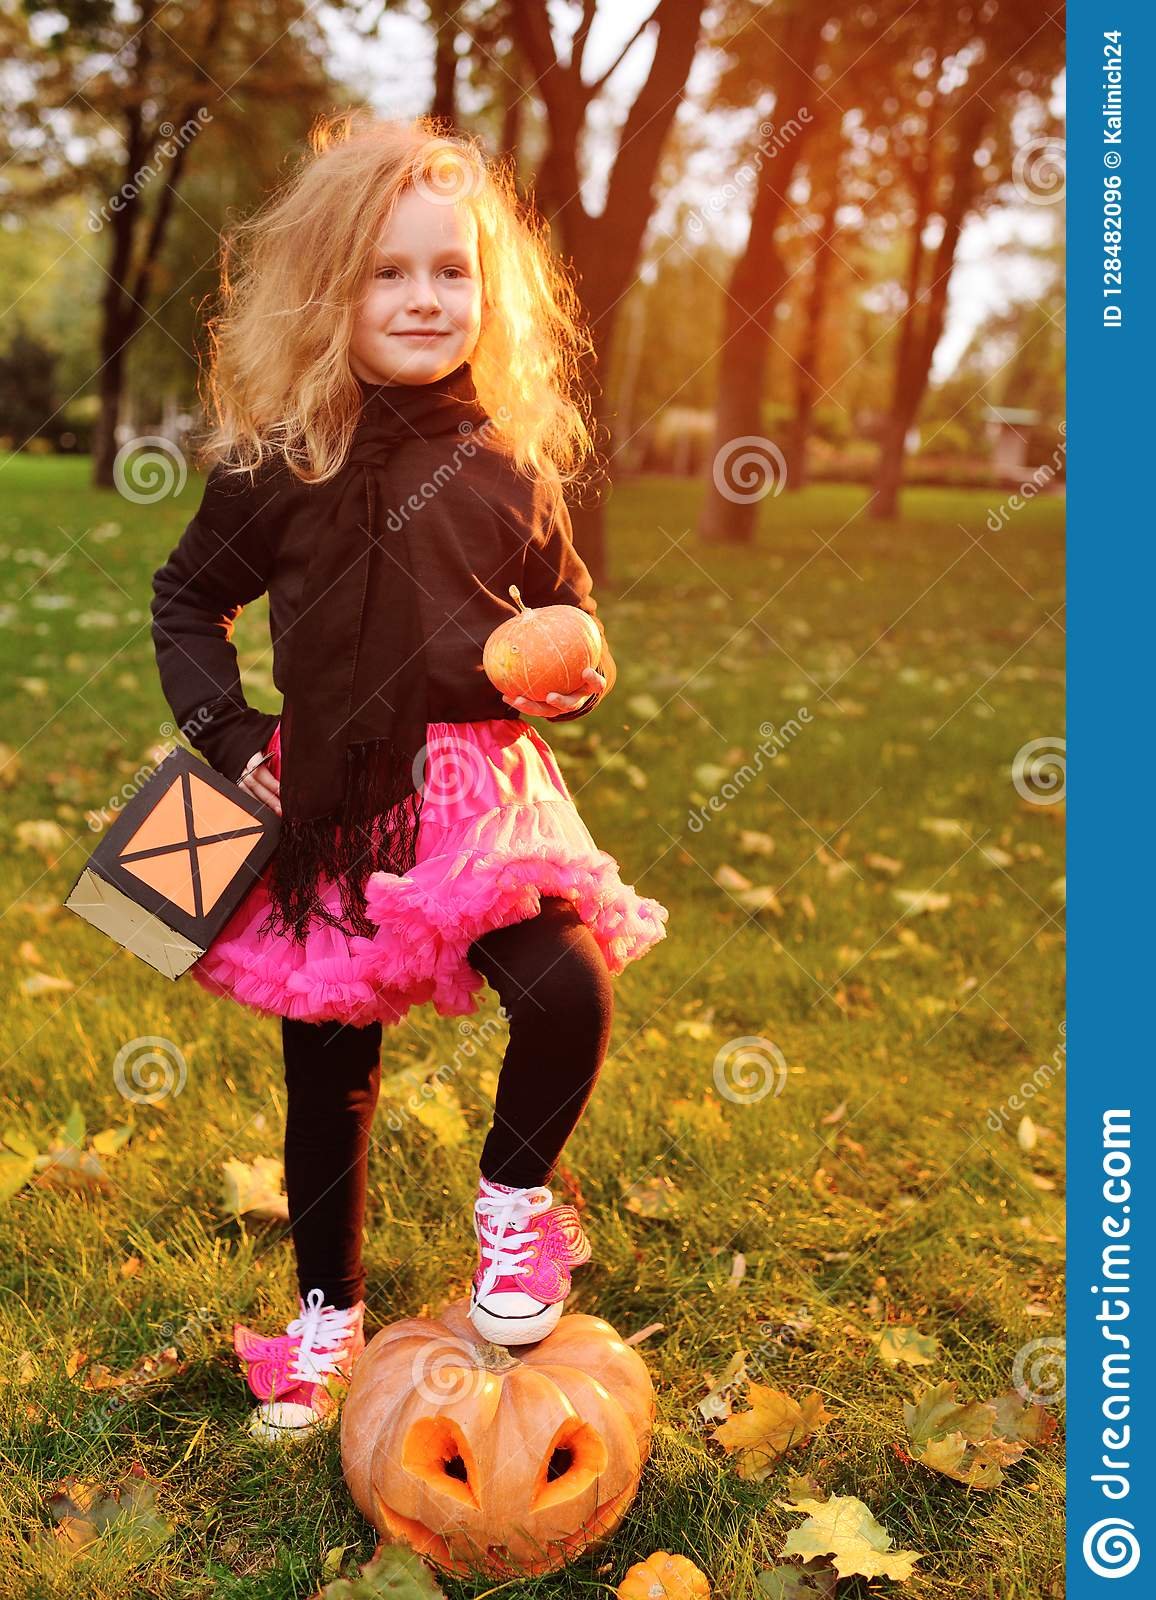 d24f663db475 Baby little girl in carnival costume with pumpkin celebrating halloween